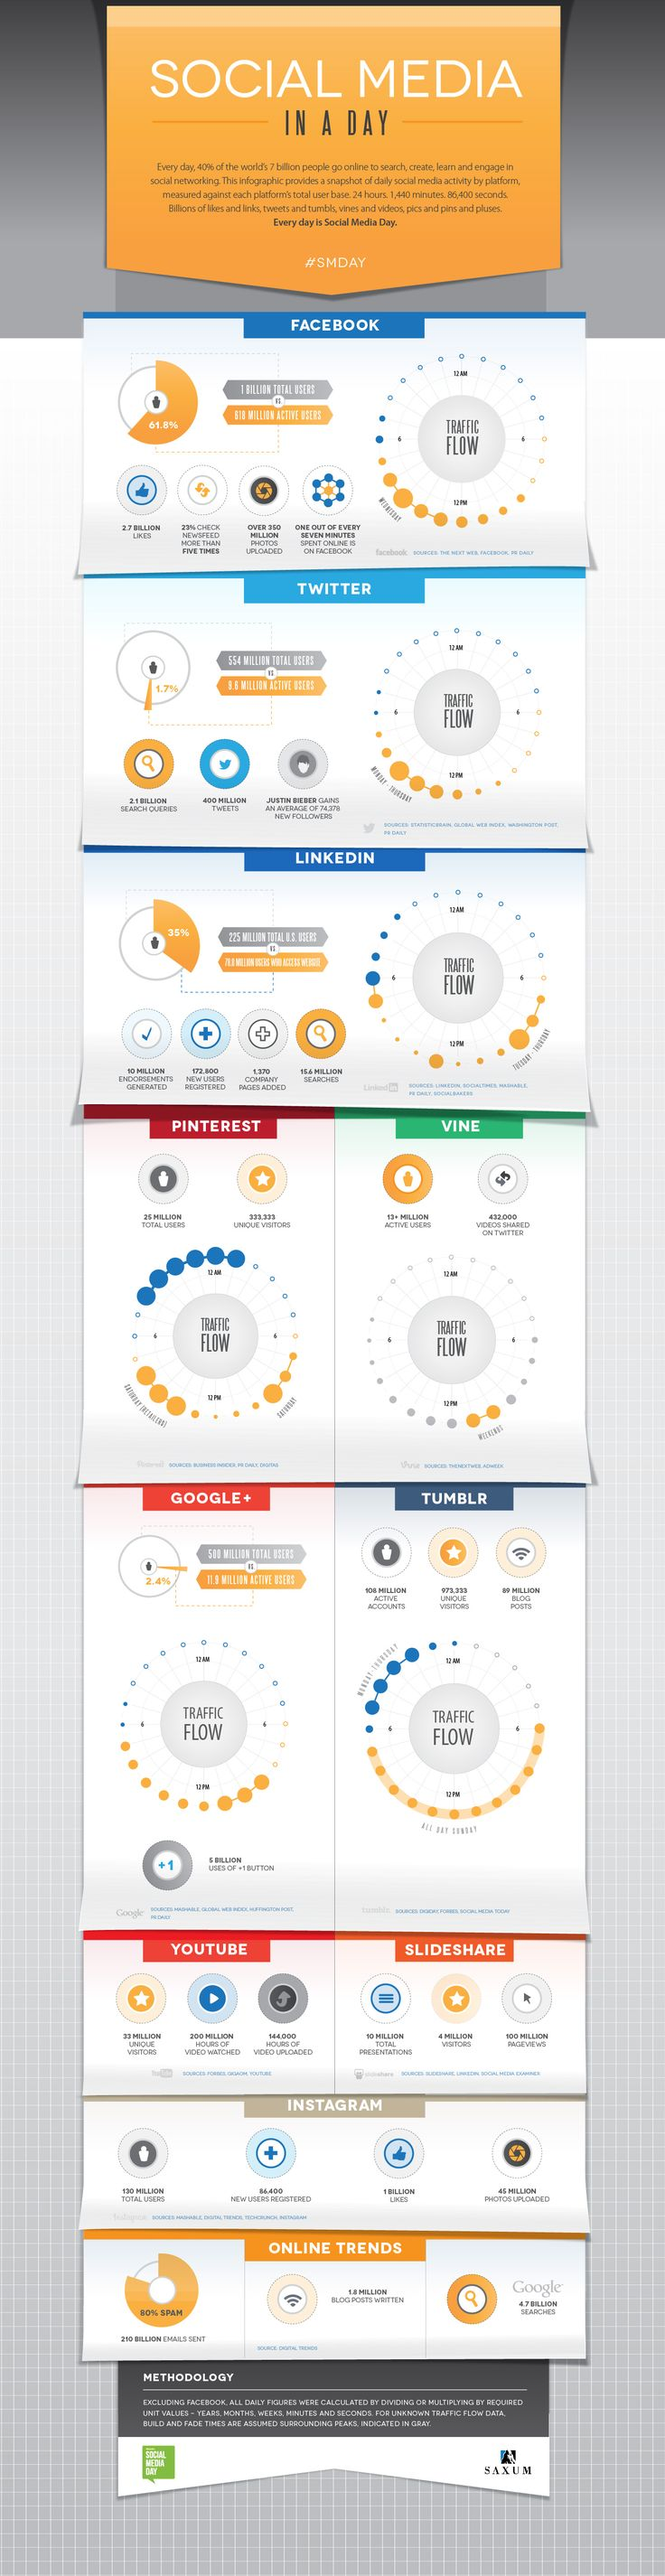 Infographic - when are users on different social media platforms active